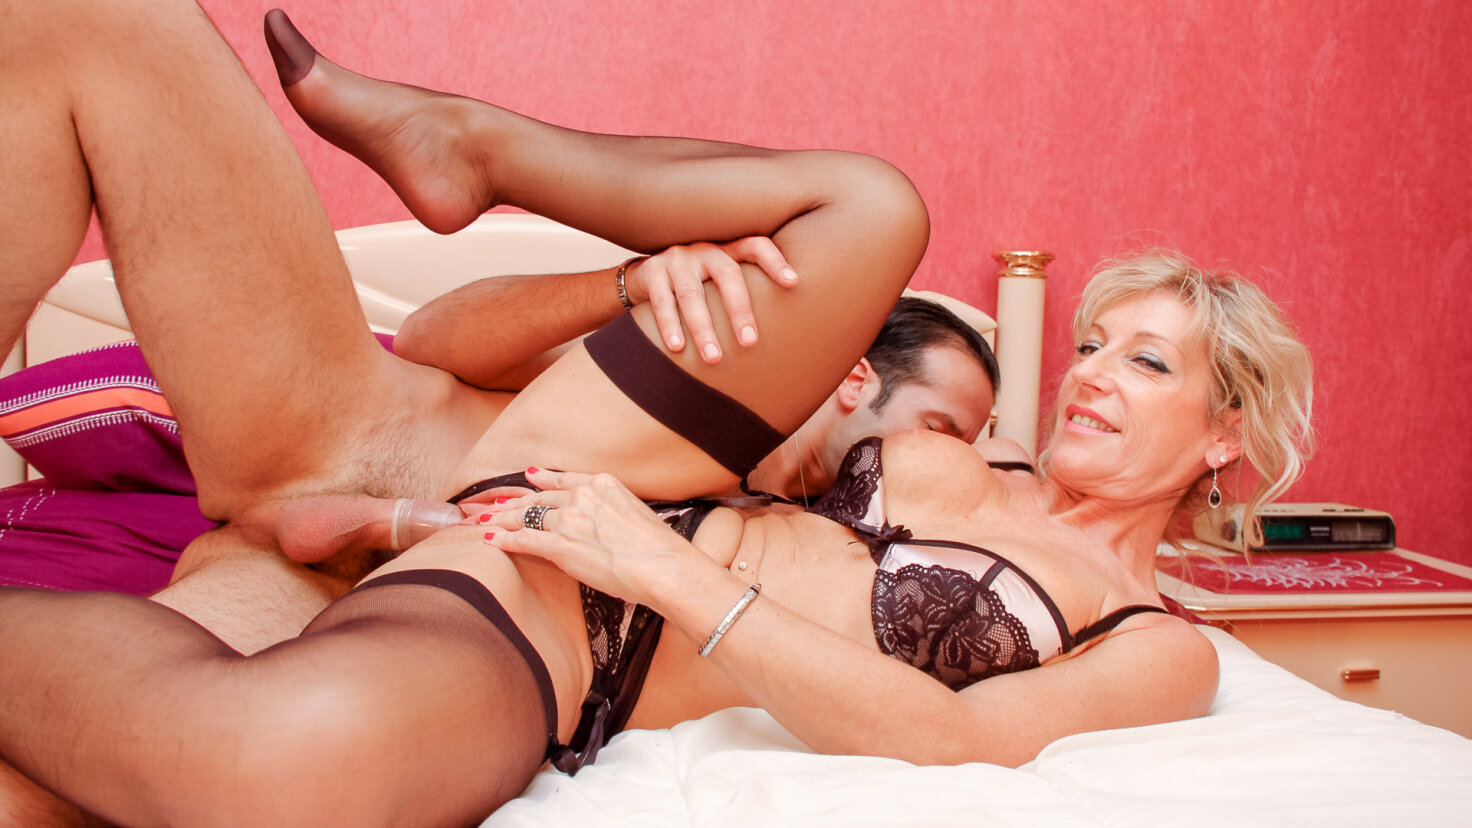 Hot blonde French MILF amateur gets cum covered in steamy rough fuck